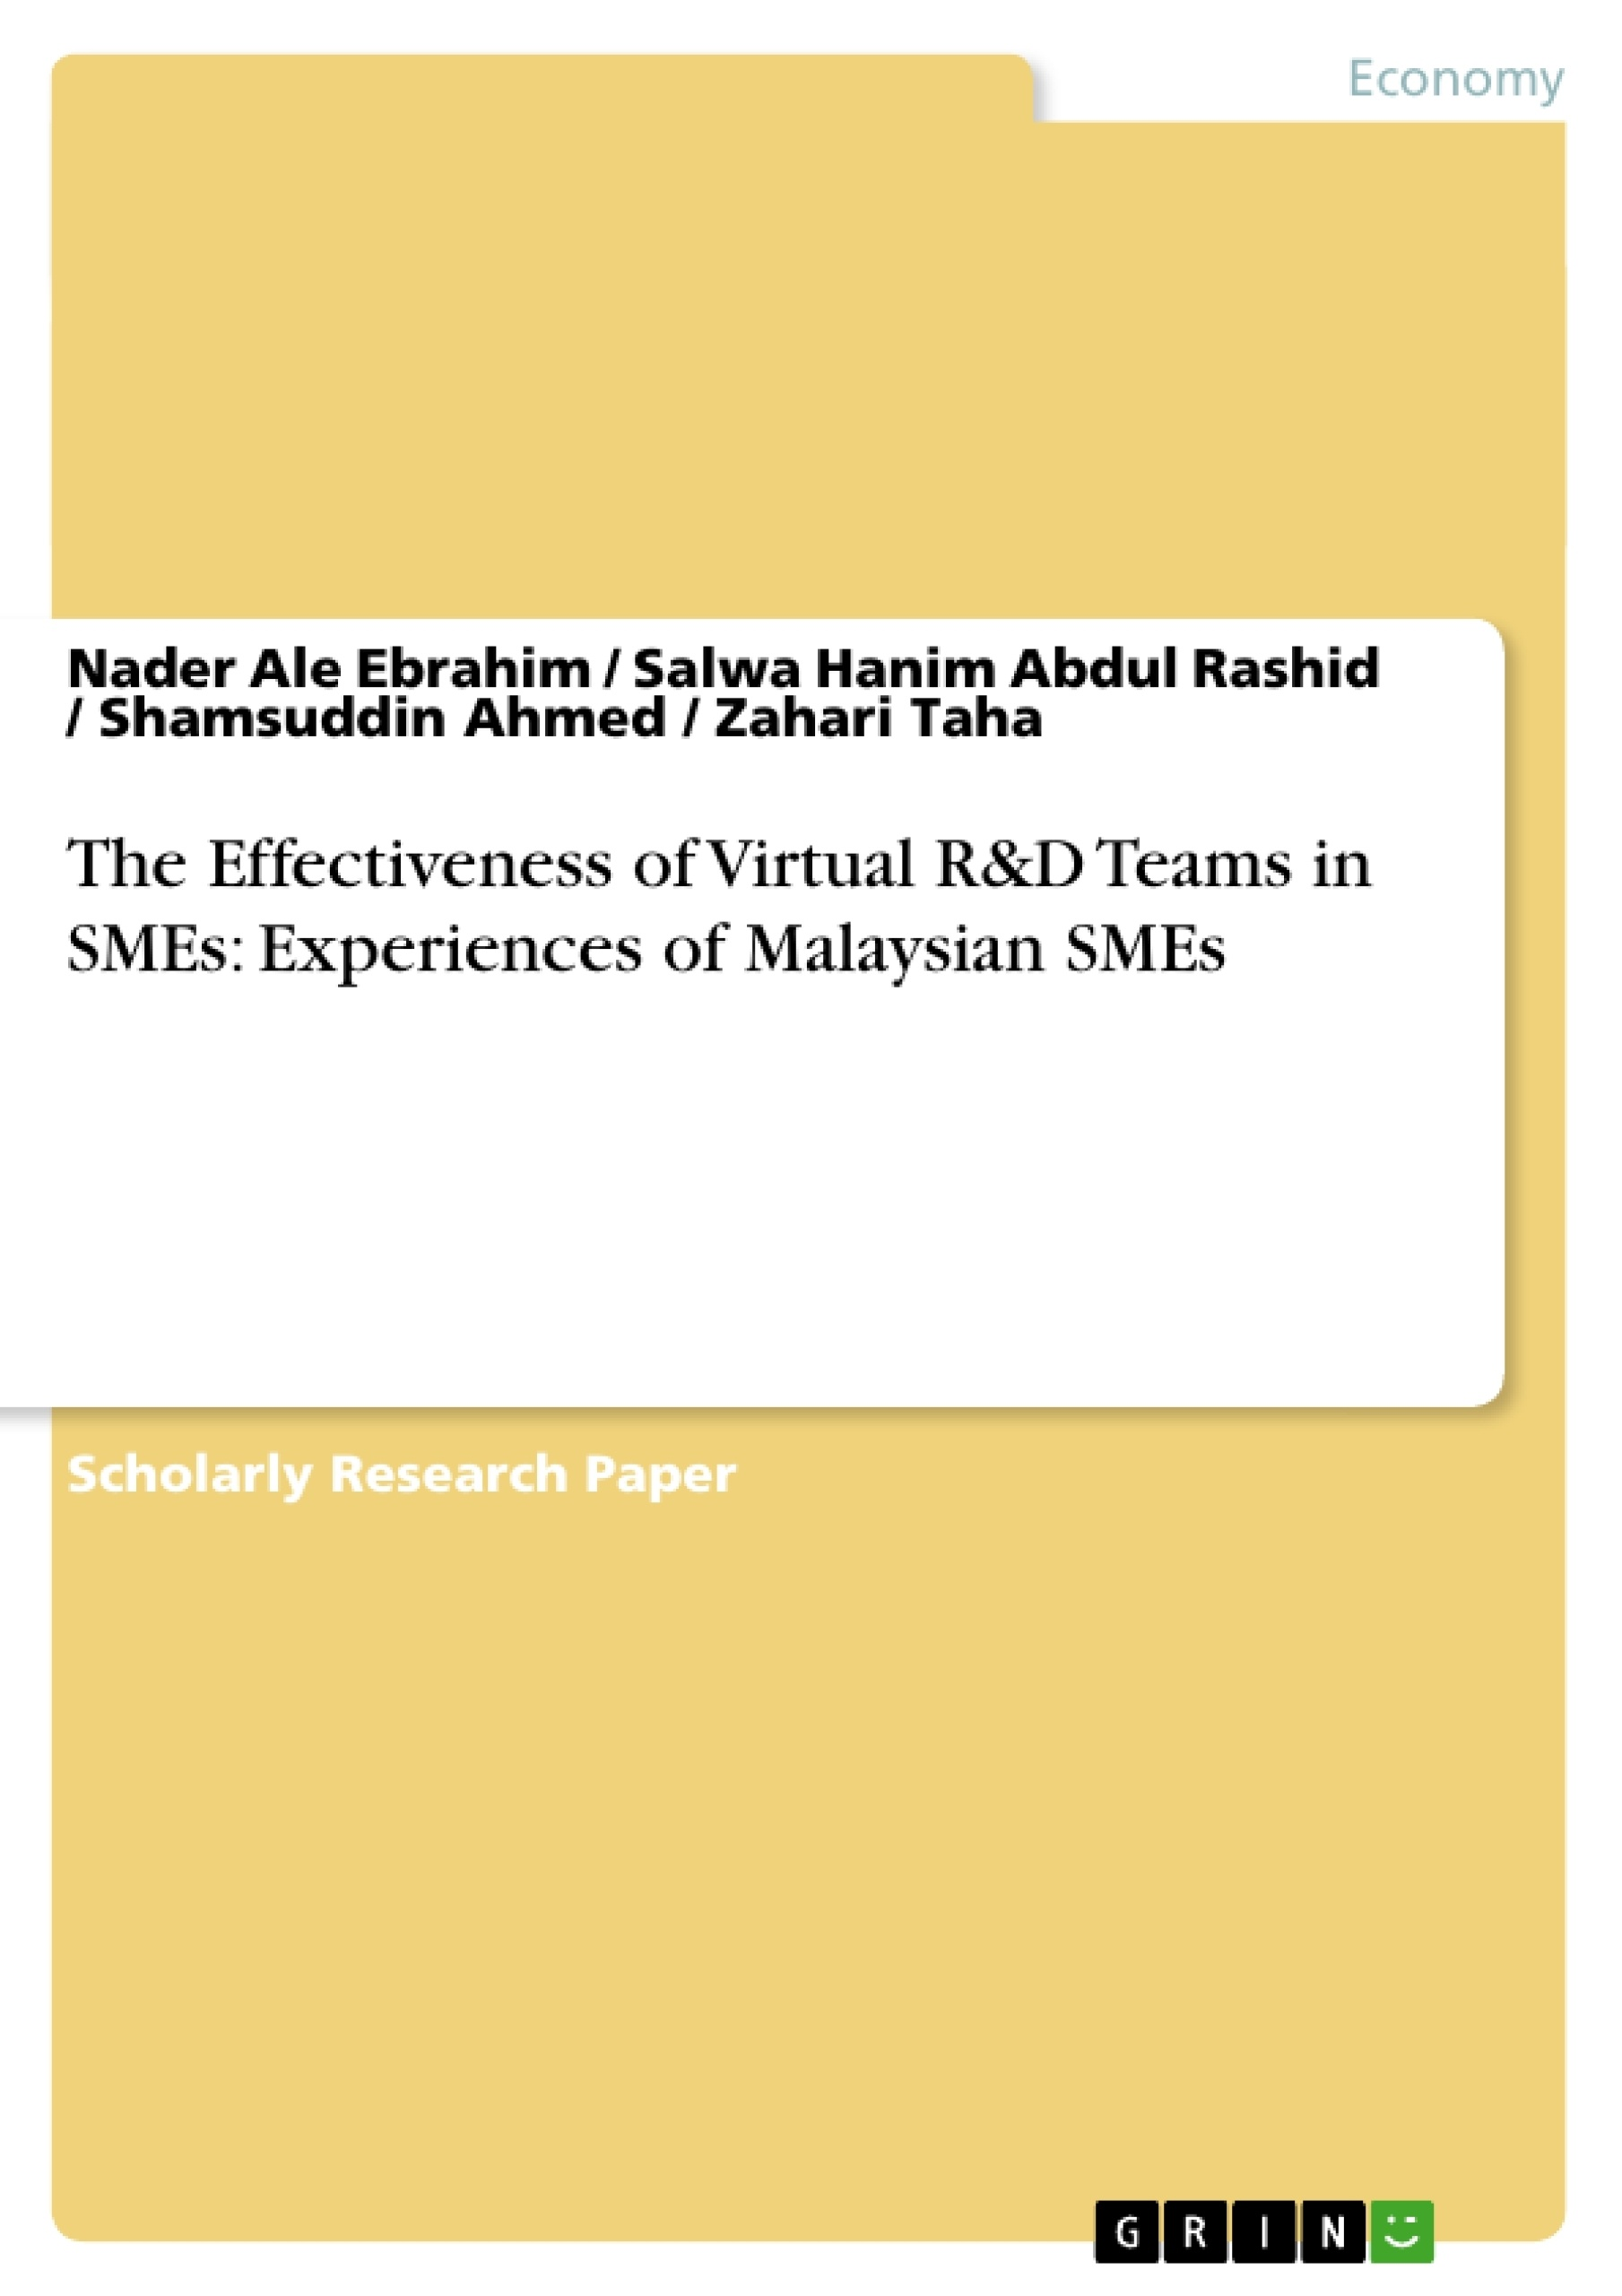 Title: The Effectiveness of Virtual R&D Teams in SMEs: Experiences of Malaysian SMEs